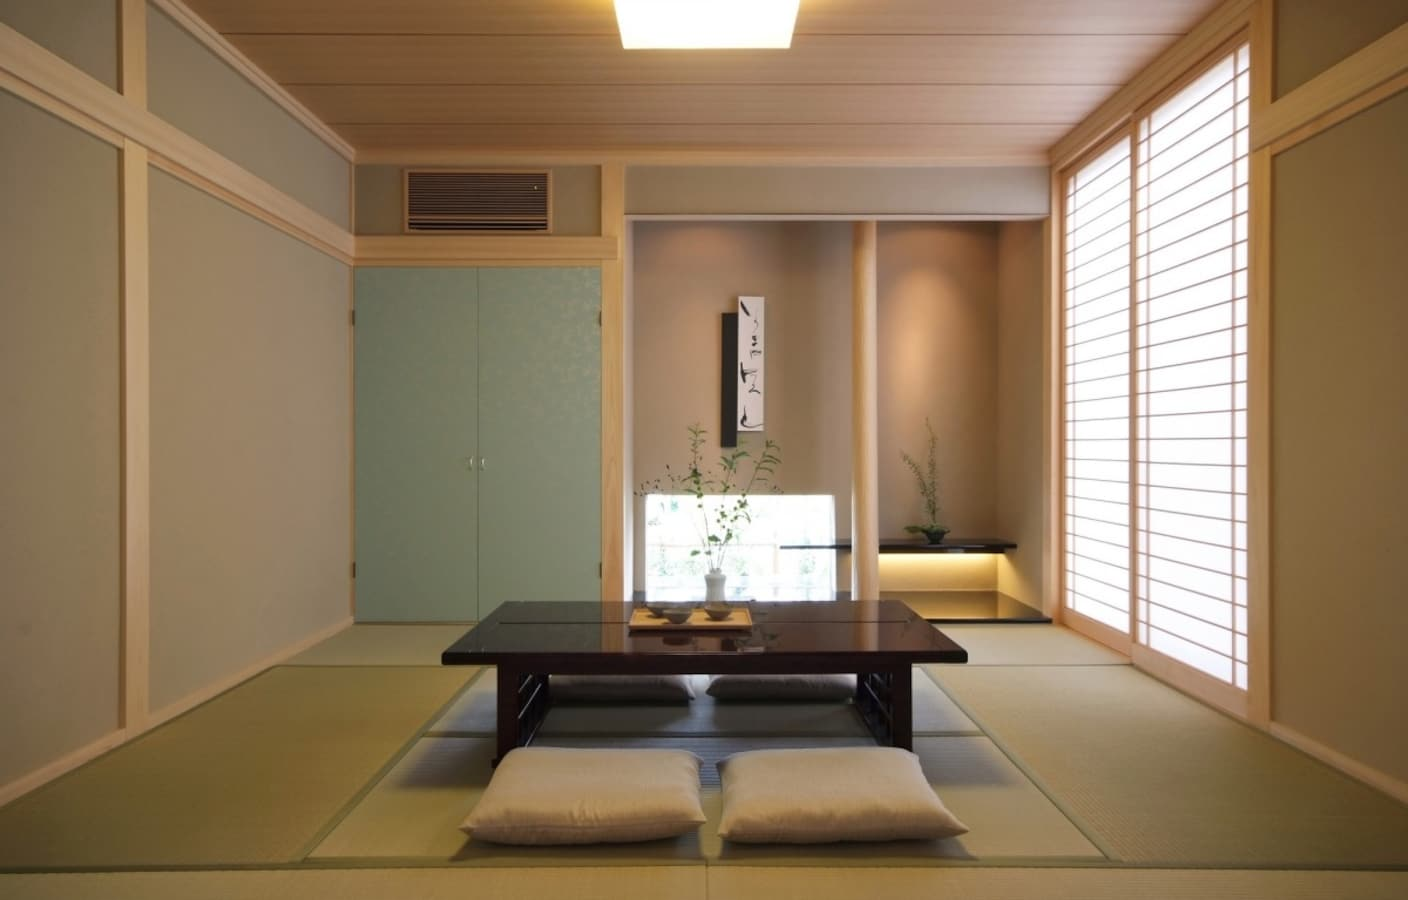 Glean the Secrets of Japanese Interior Design  All About